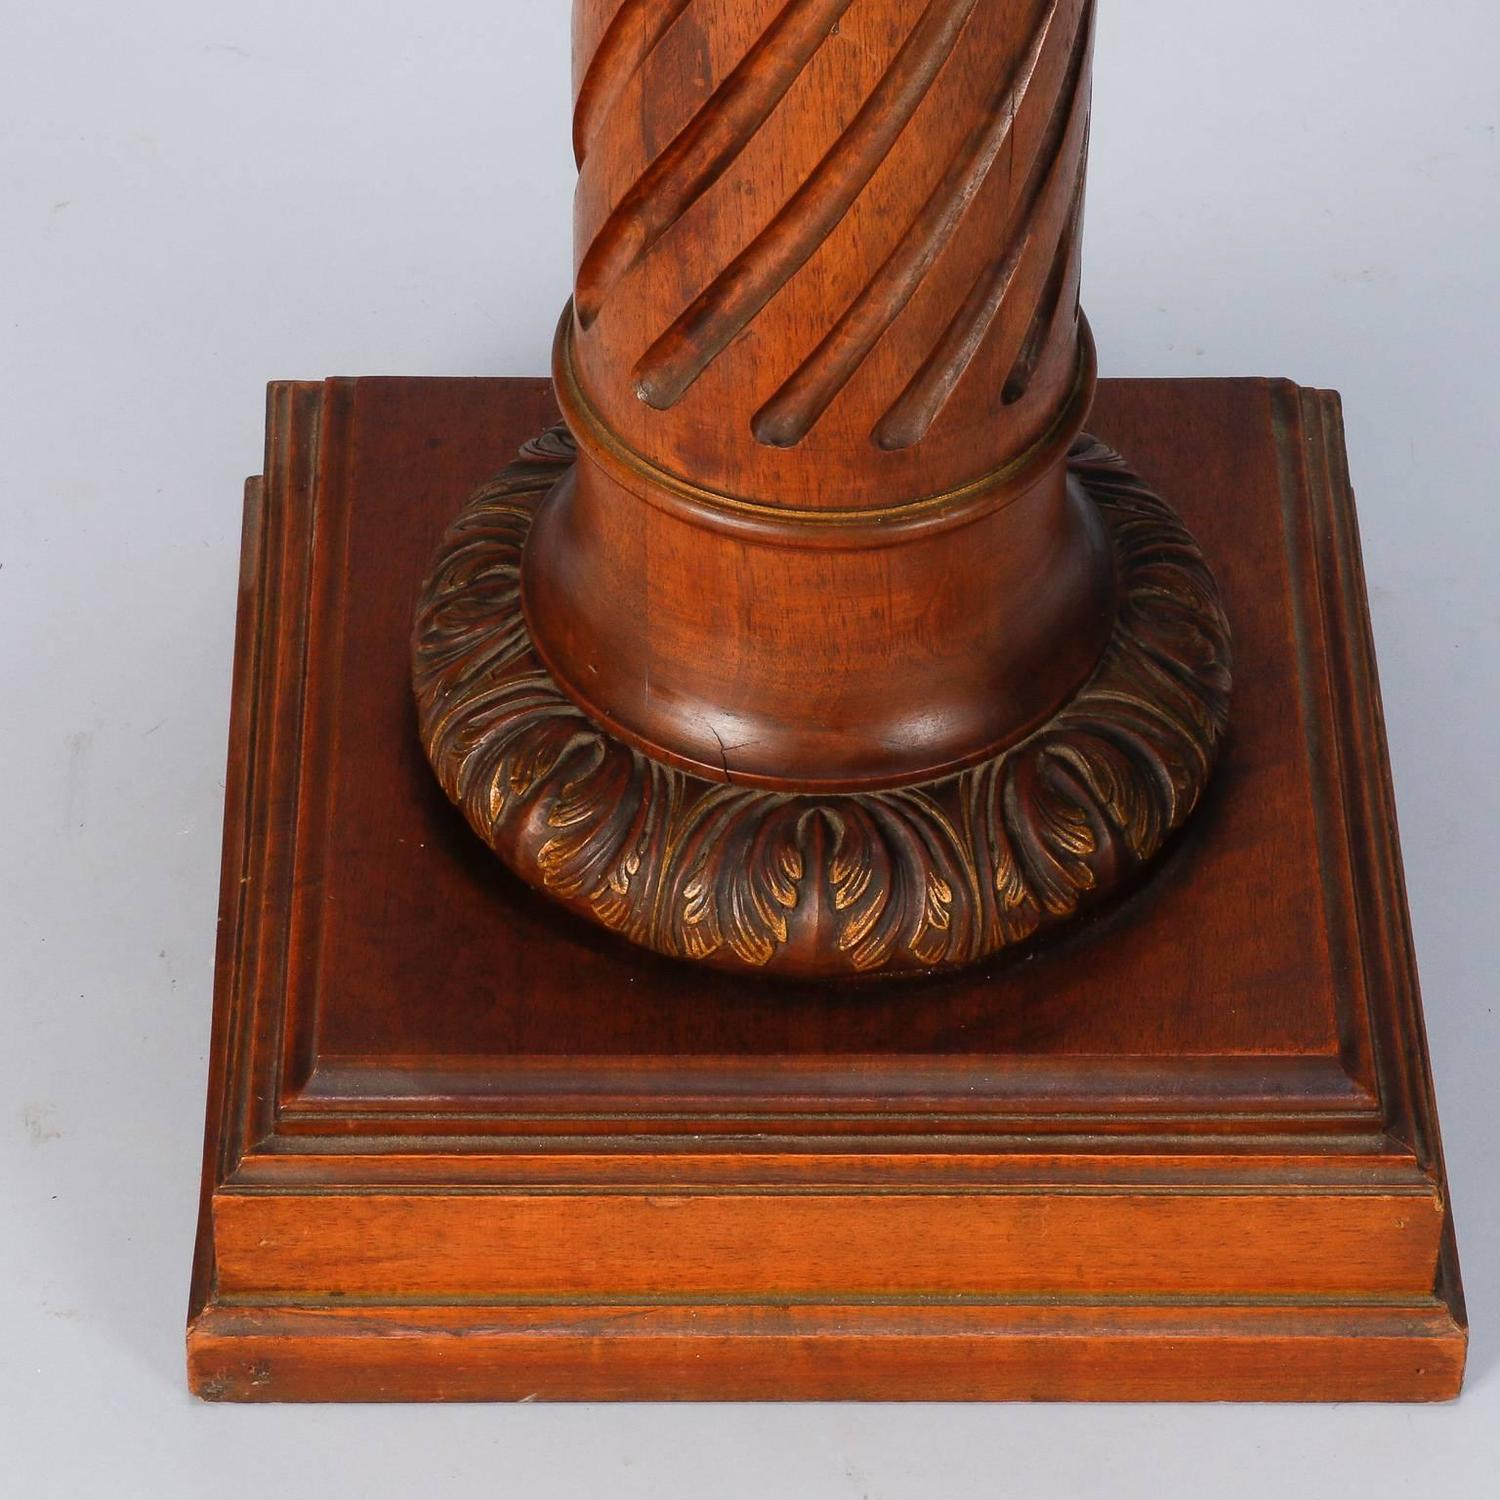 Tall Carved Wood Pedestal Plant Or Statue Stand For At